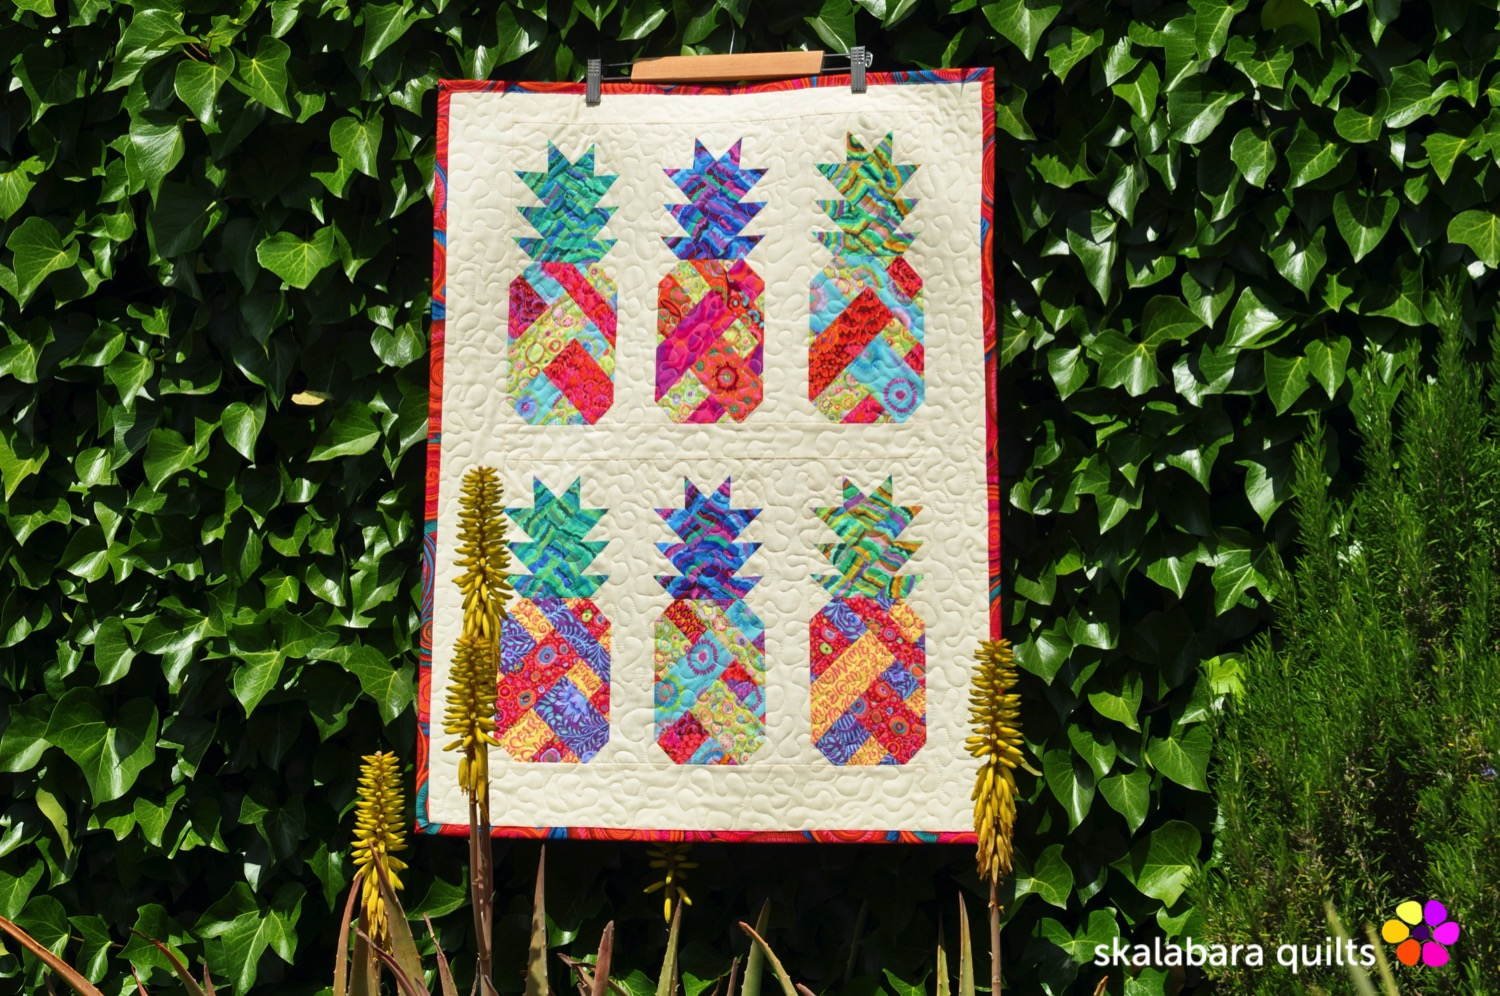 pineapple wall hanging 4 - skalabara quilts